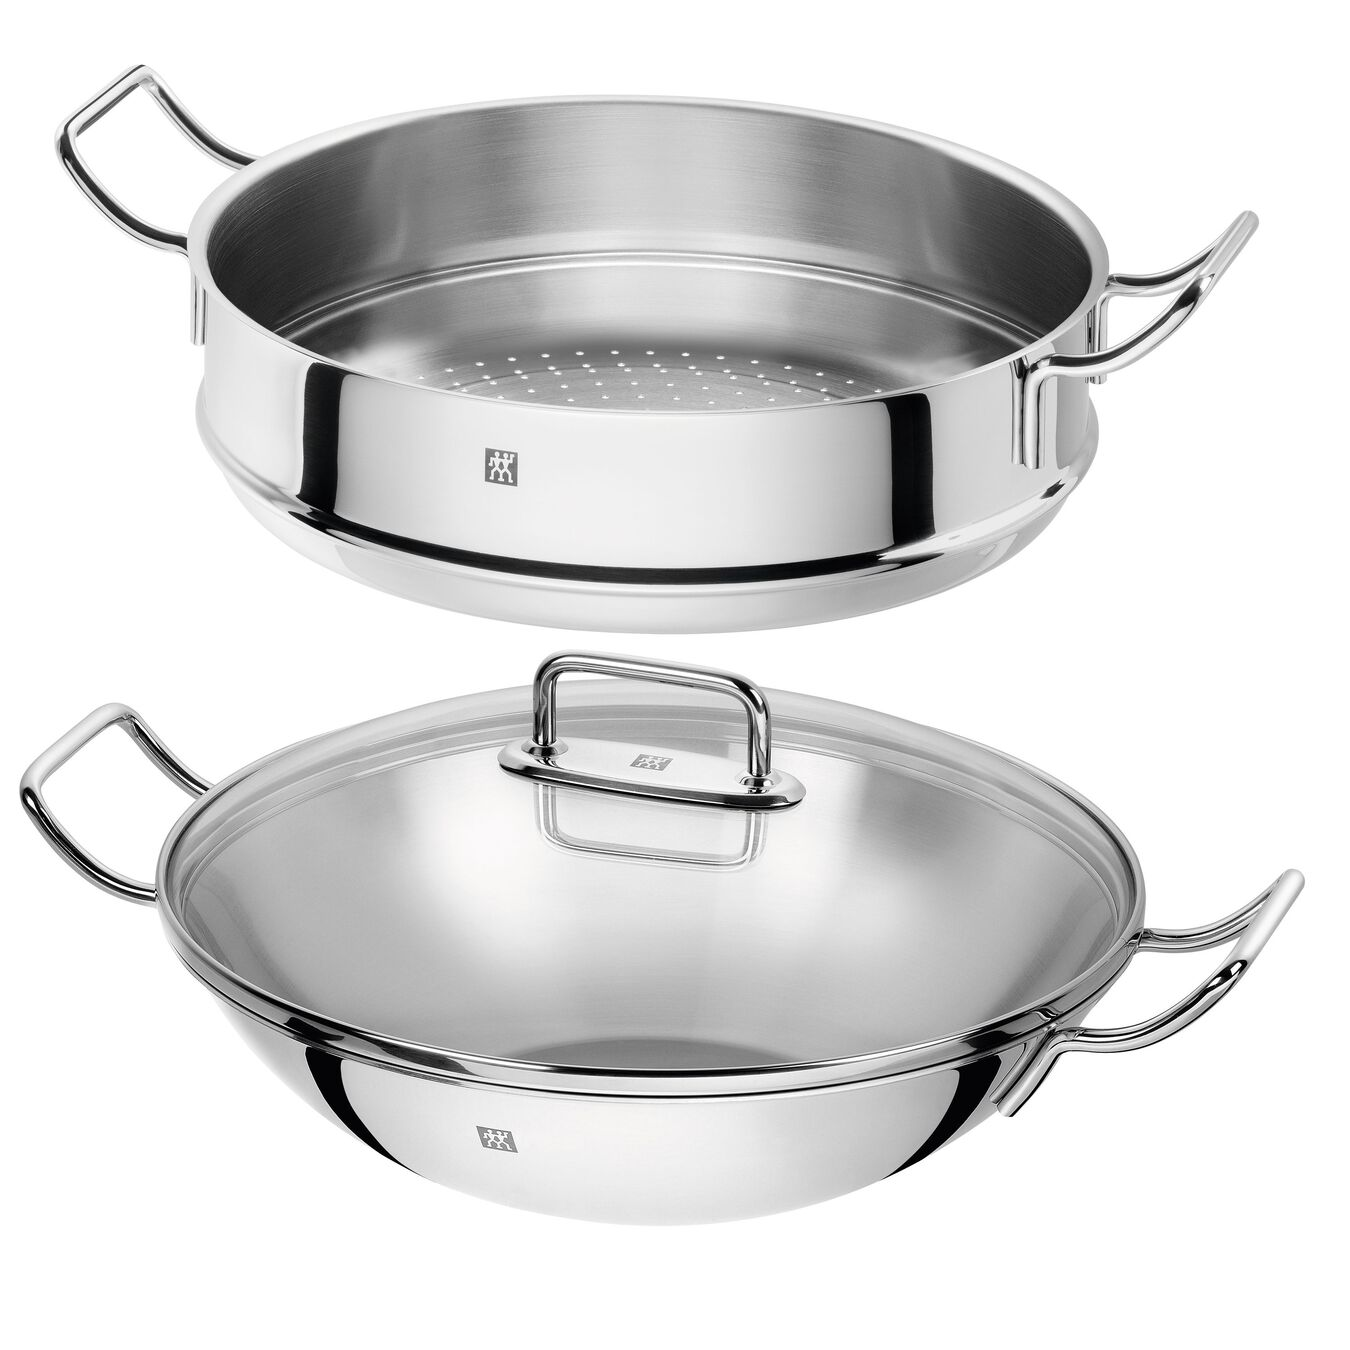 3 Piece 18/10 Stainless Steel wok with steamer and lid,,large 1